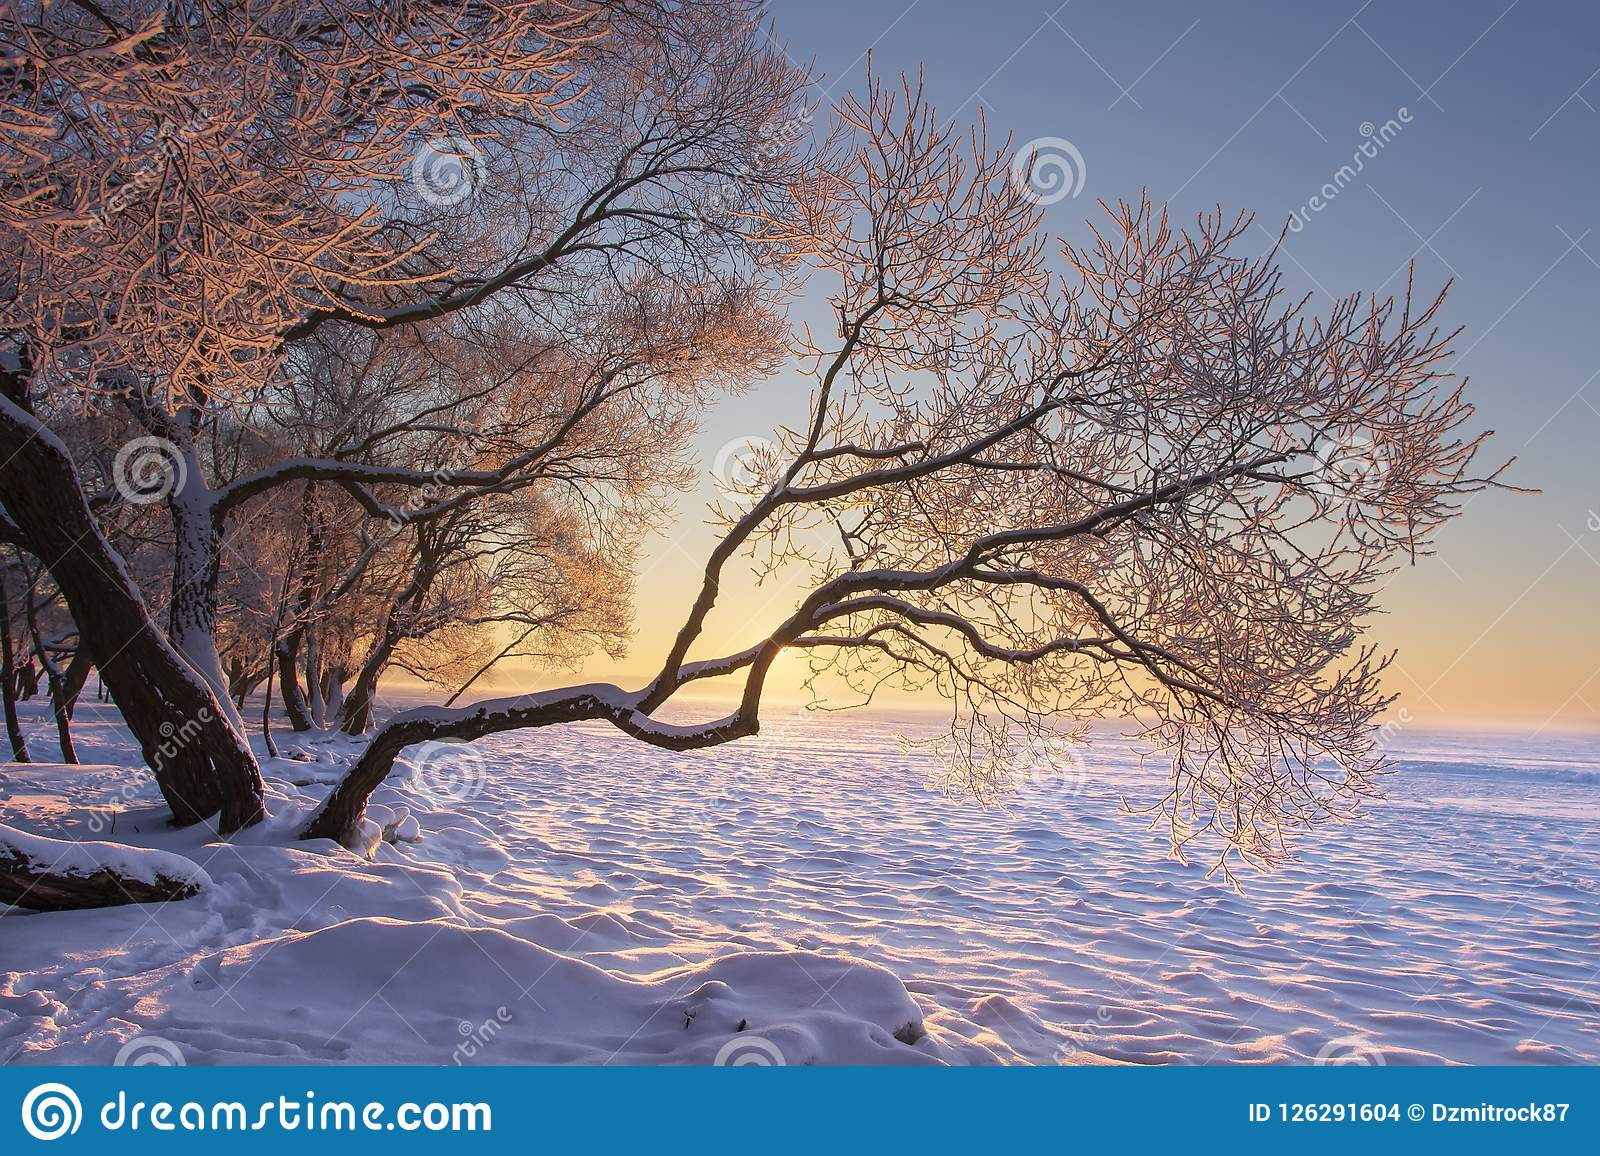 Vibrant winter landscape at morning sunrise with yellow sunlight. Snowy trees on froze on lake shore. Nature winter scene